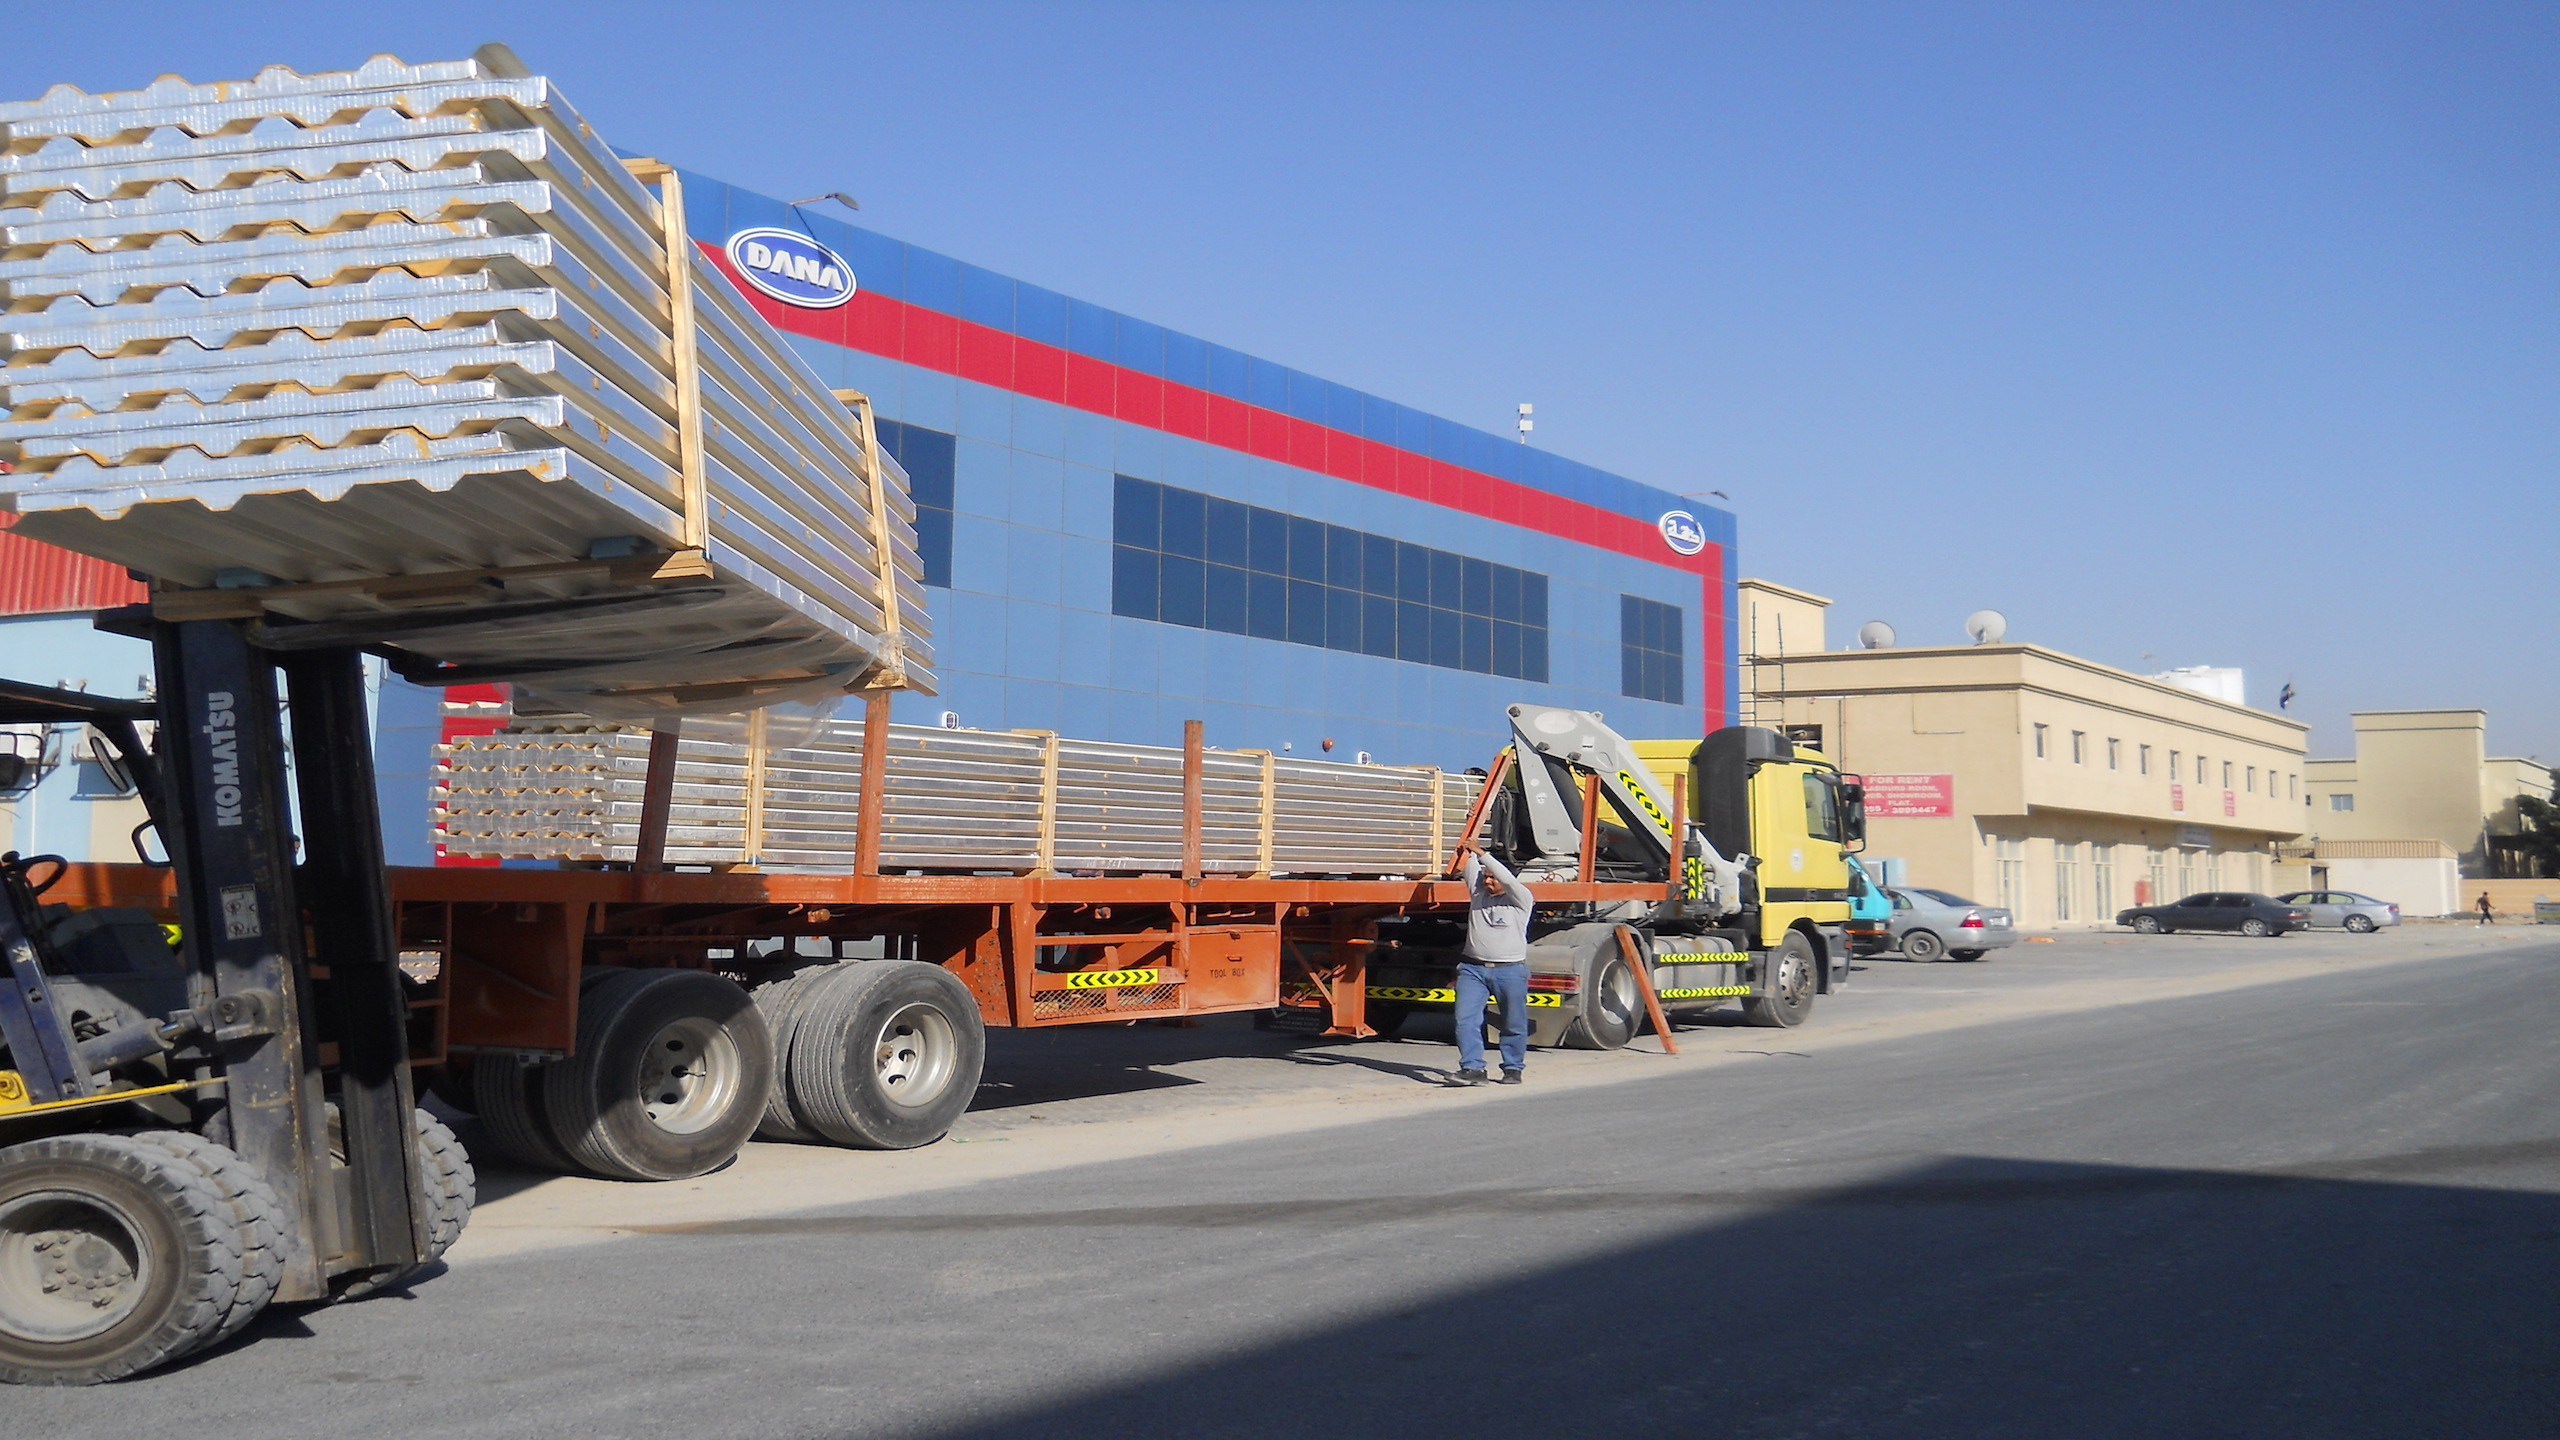 Dana steel oman - Supplier of profile corrugated Sheets,roof & wall sandwich panels,z purlins and accessories in OMAN